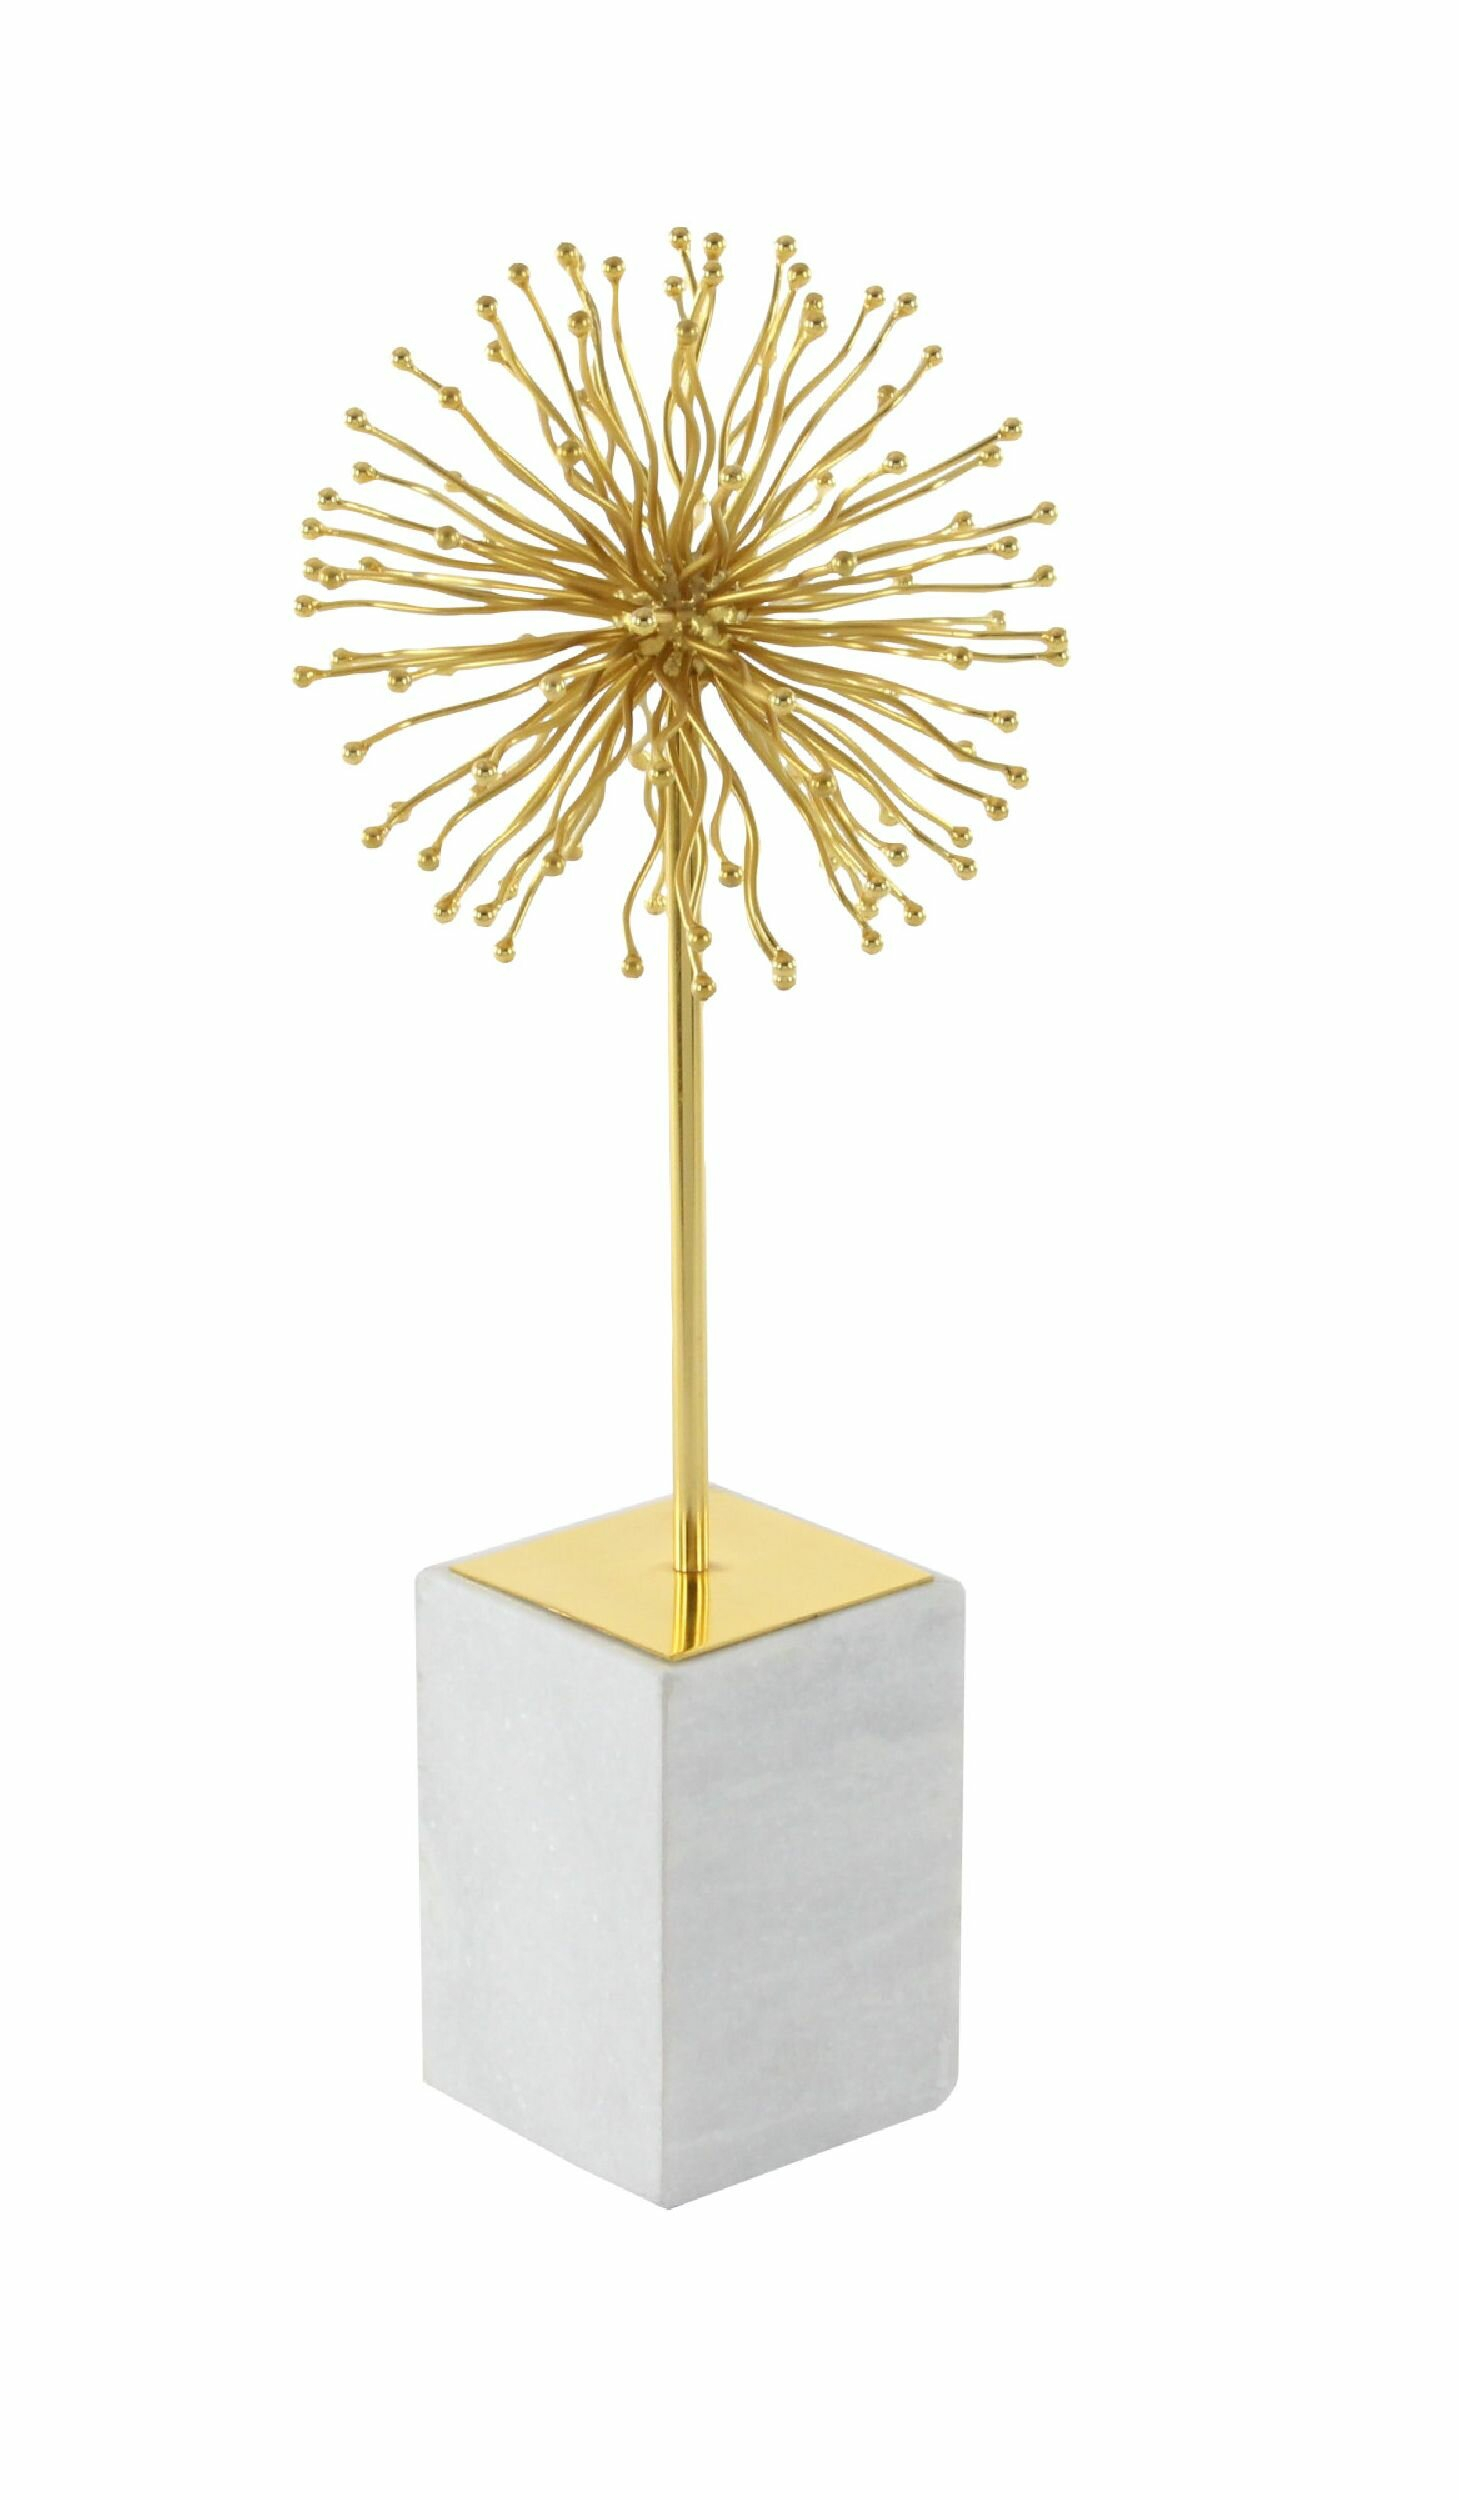 Hungerford Marble Star Sculpture intended for Set of 3 Contemporary 6, 9, and 11 Inch Gold Tin Starburst Sculptures (Image 16 of 30)